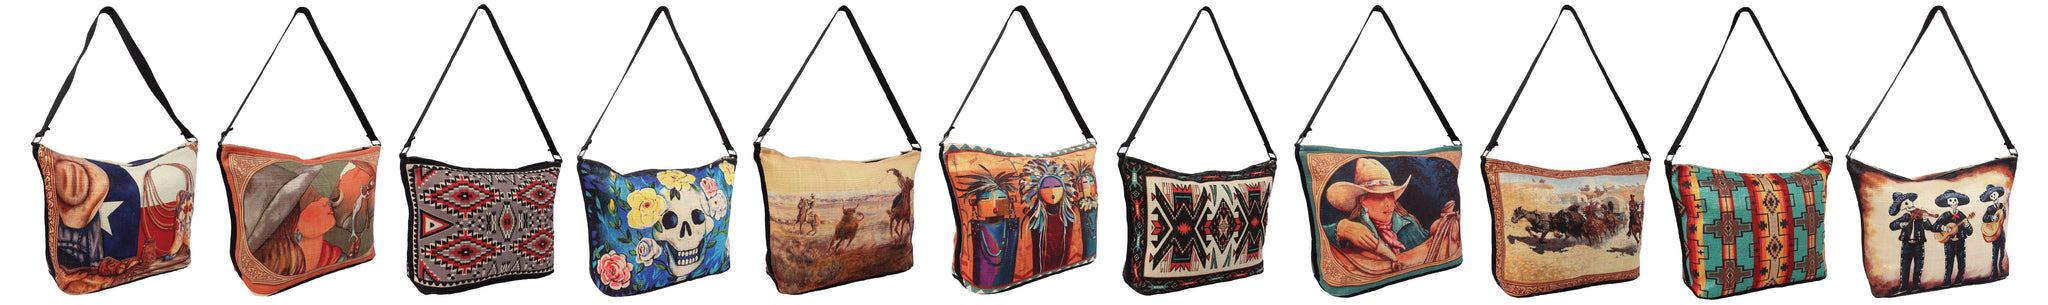 Digital Print Southwest, Western, & Day of the Dead Purses